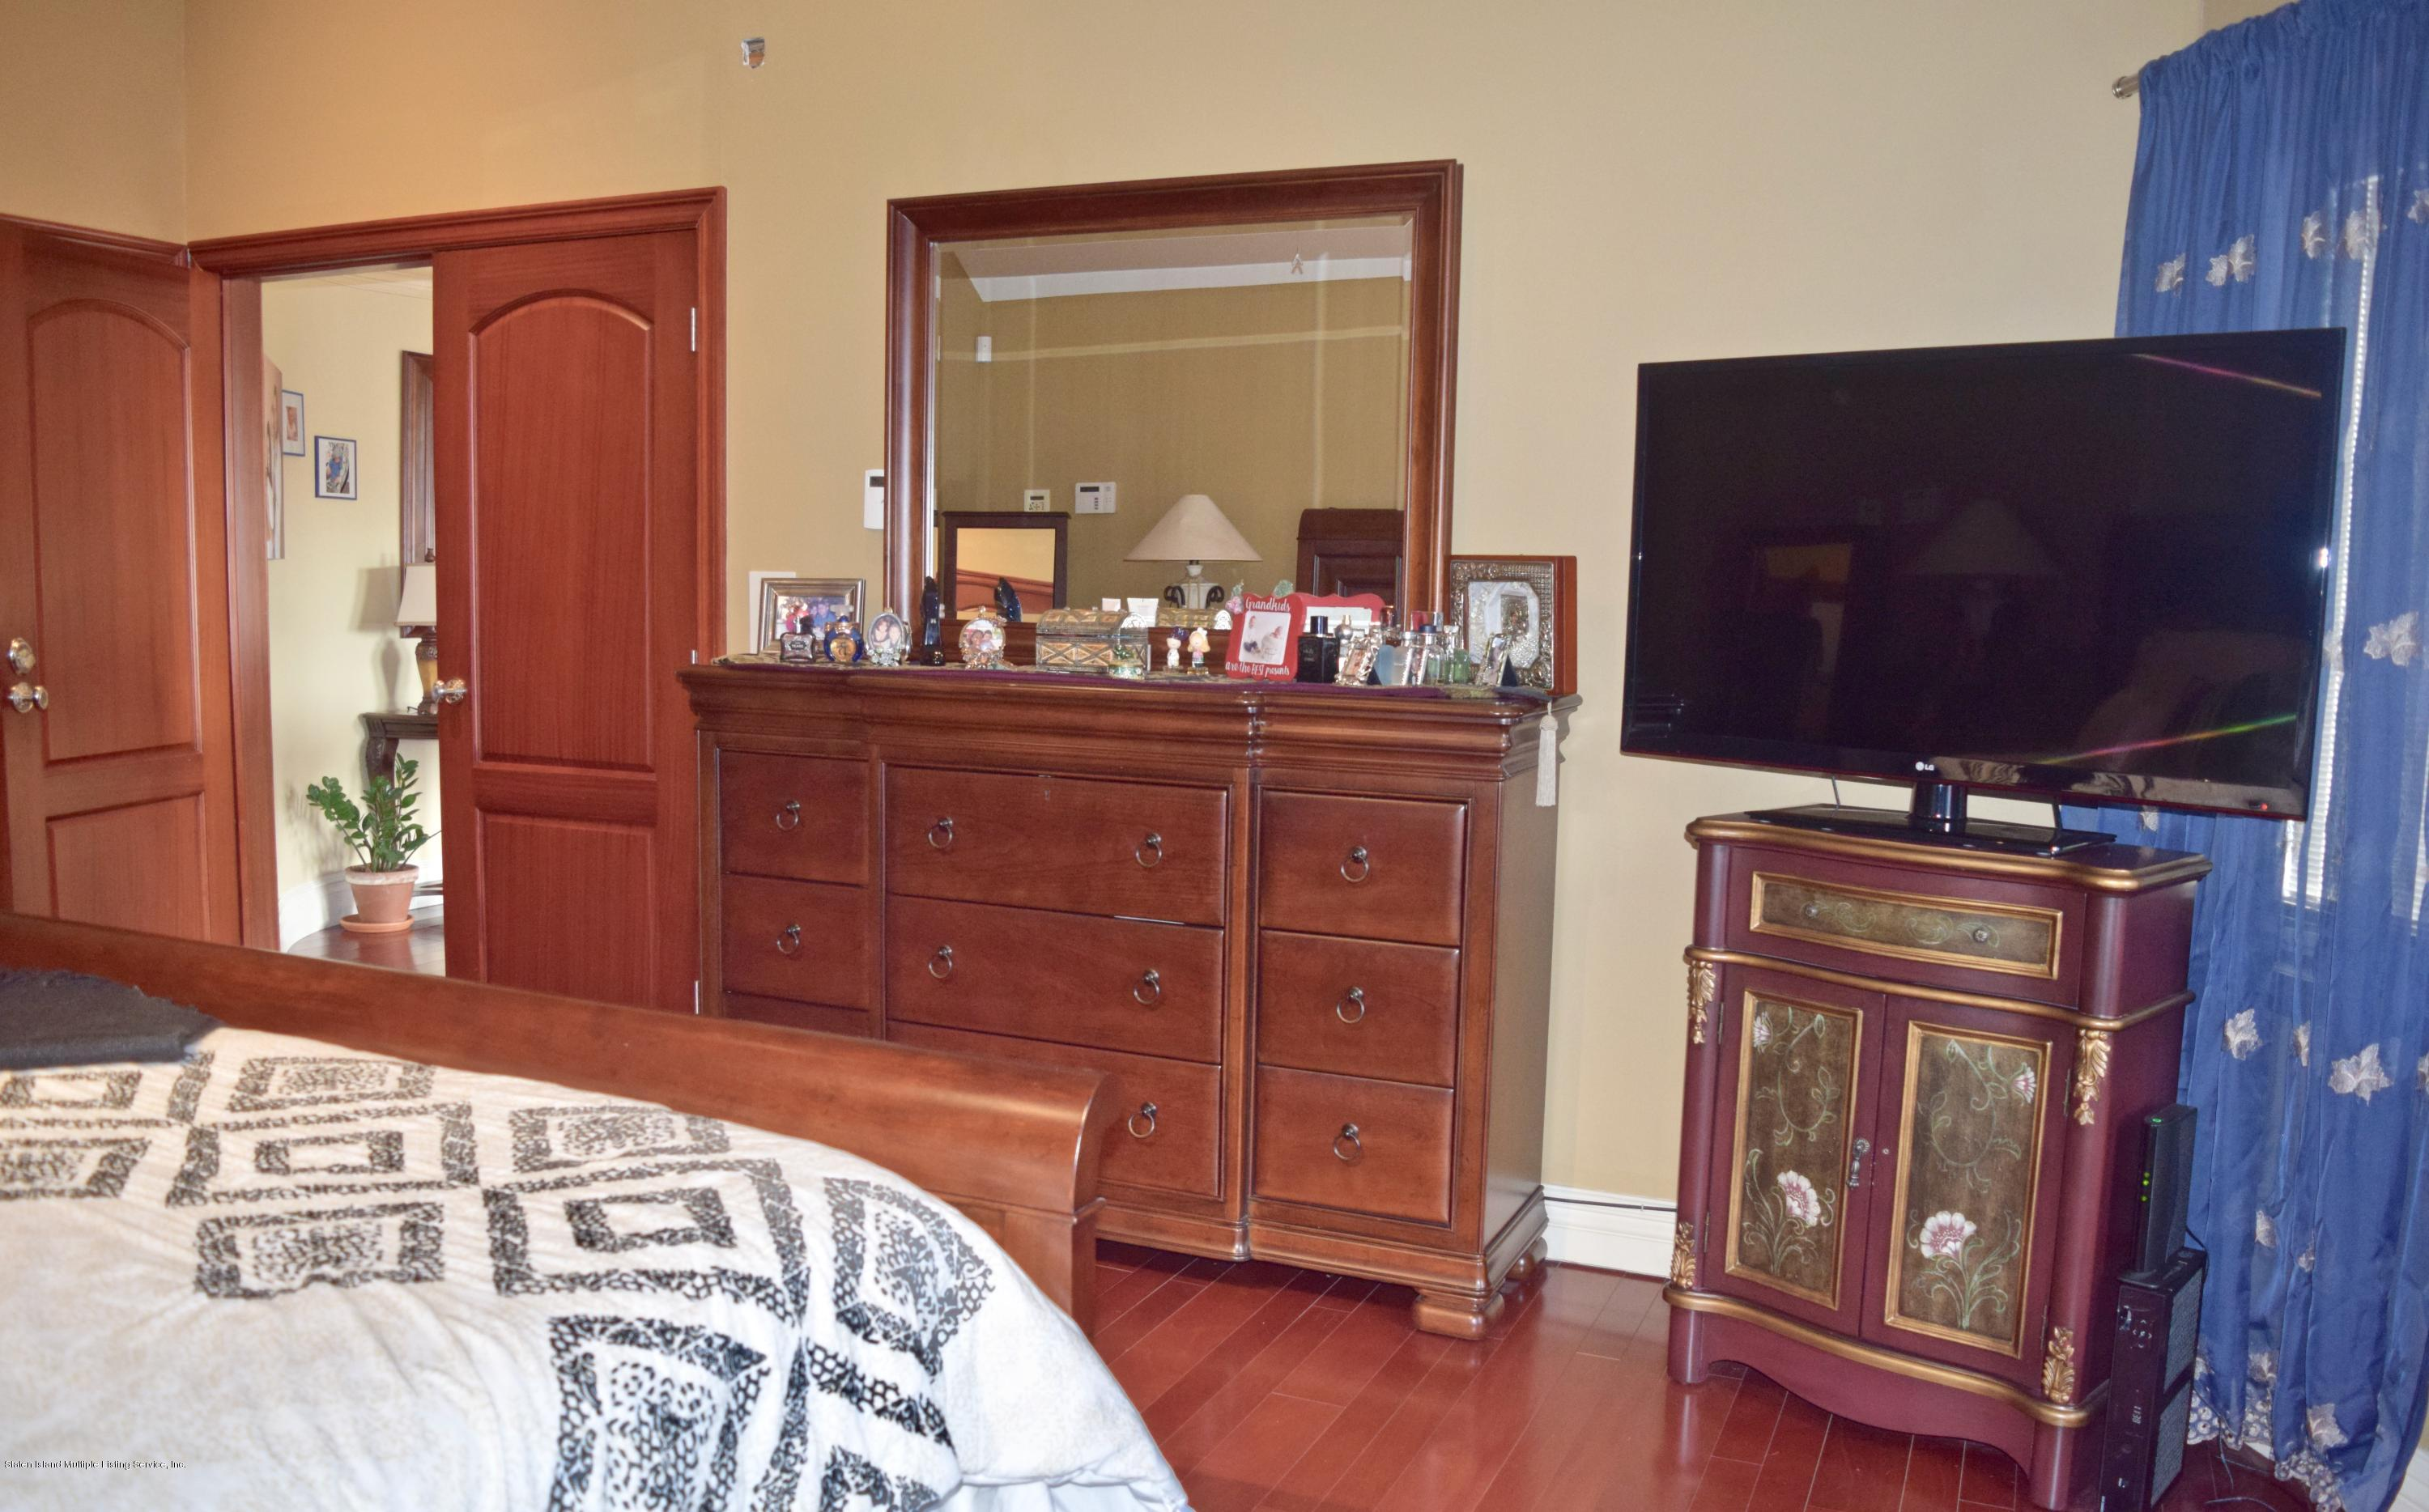 Single Family - Detached 107 Northern Boulevard  Staten Island, NY 10301, MLS-1124986-13